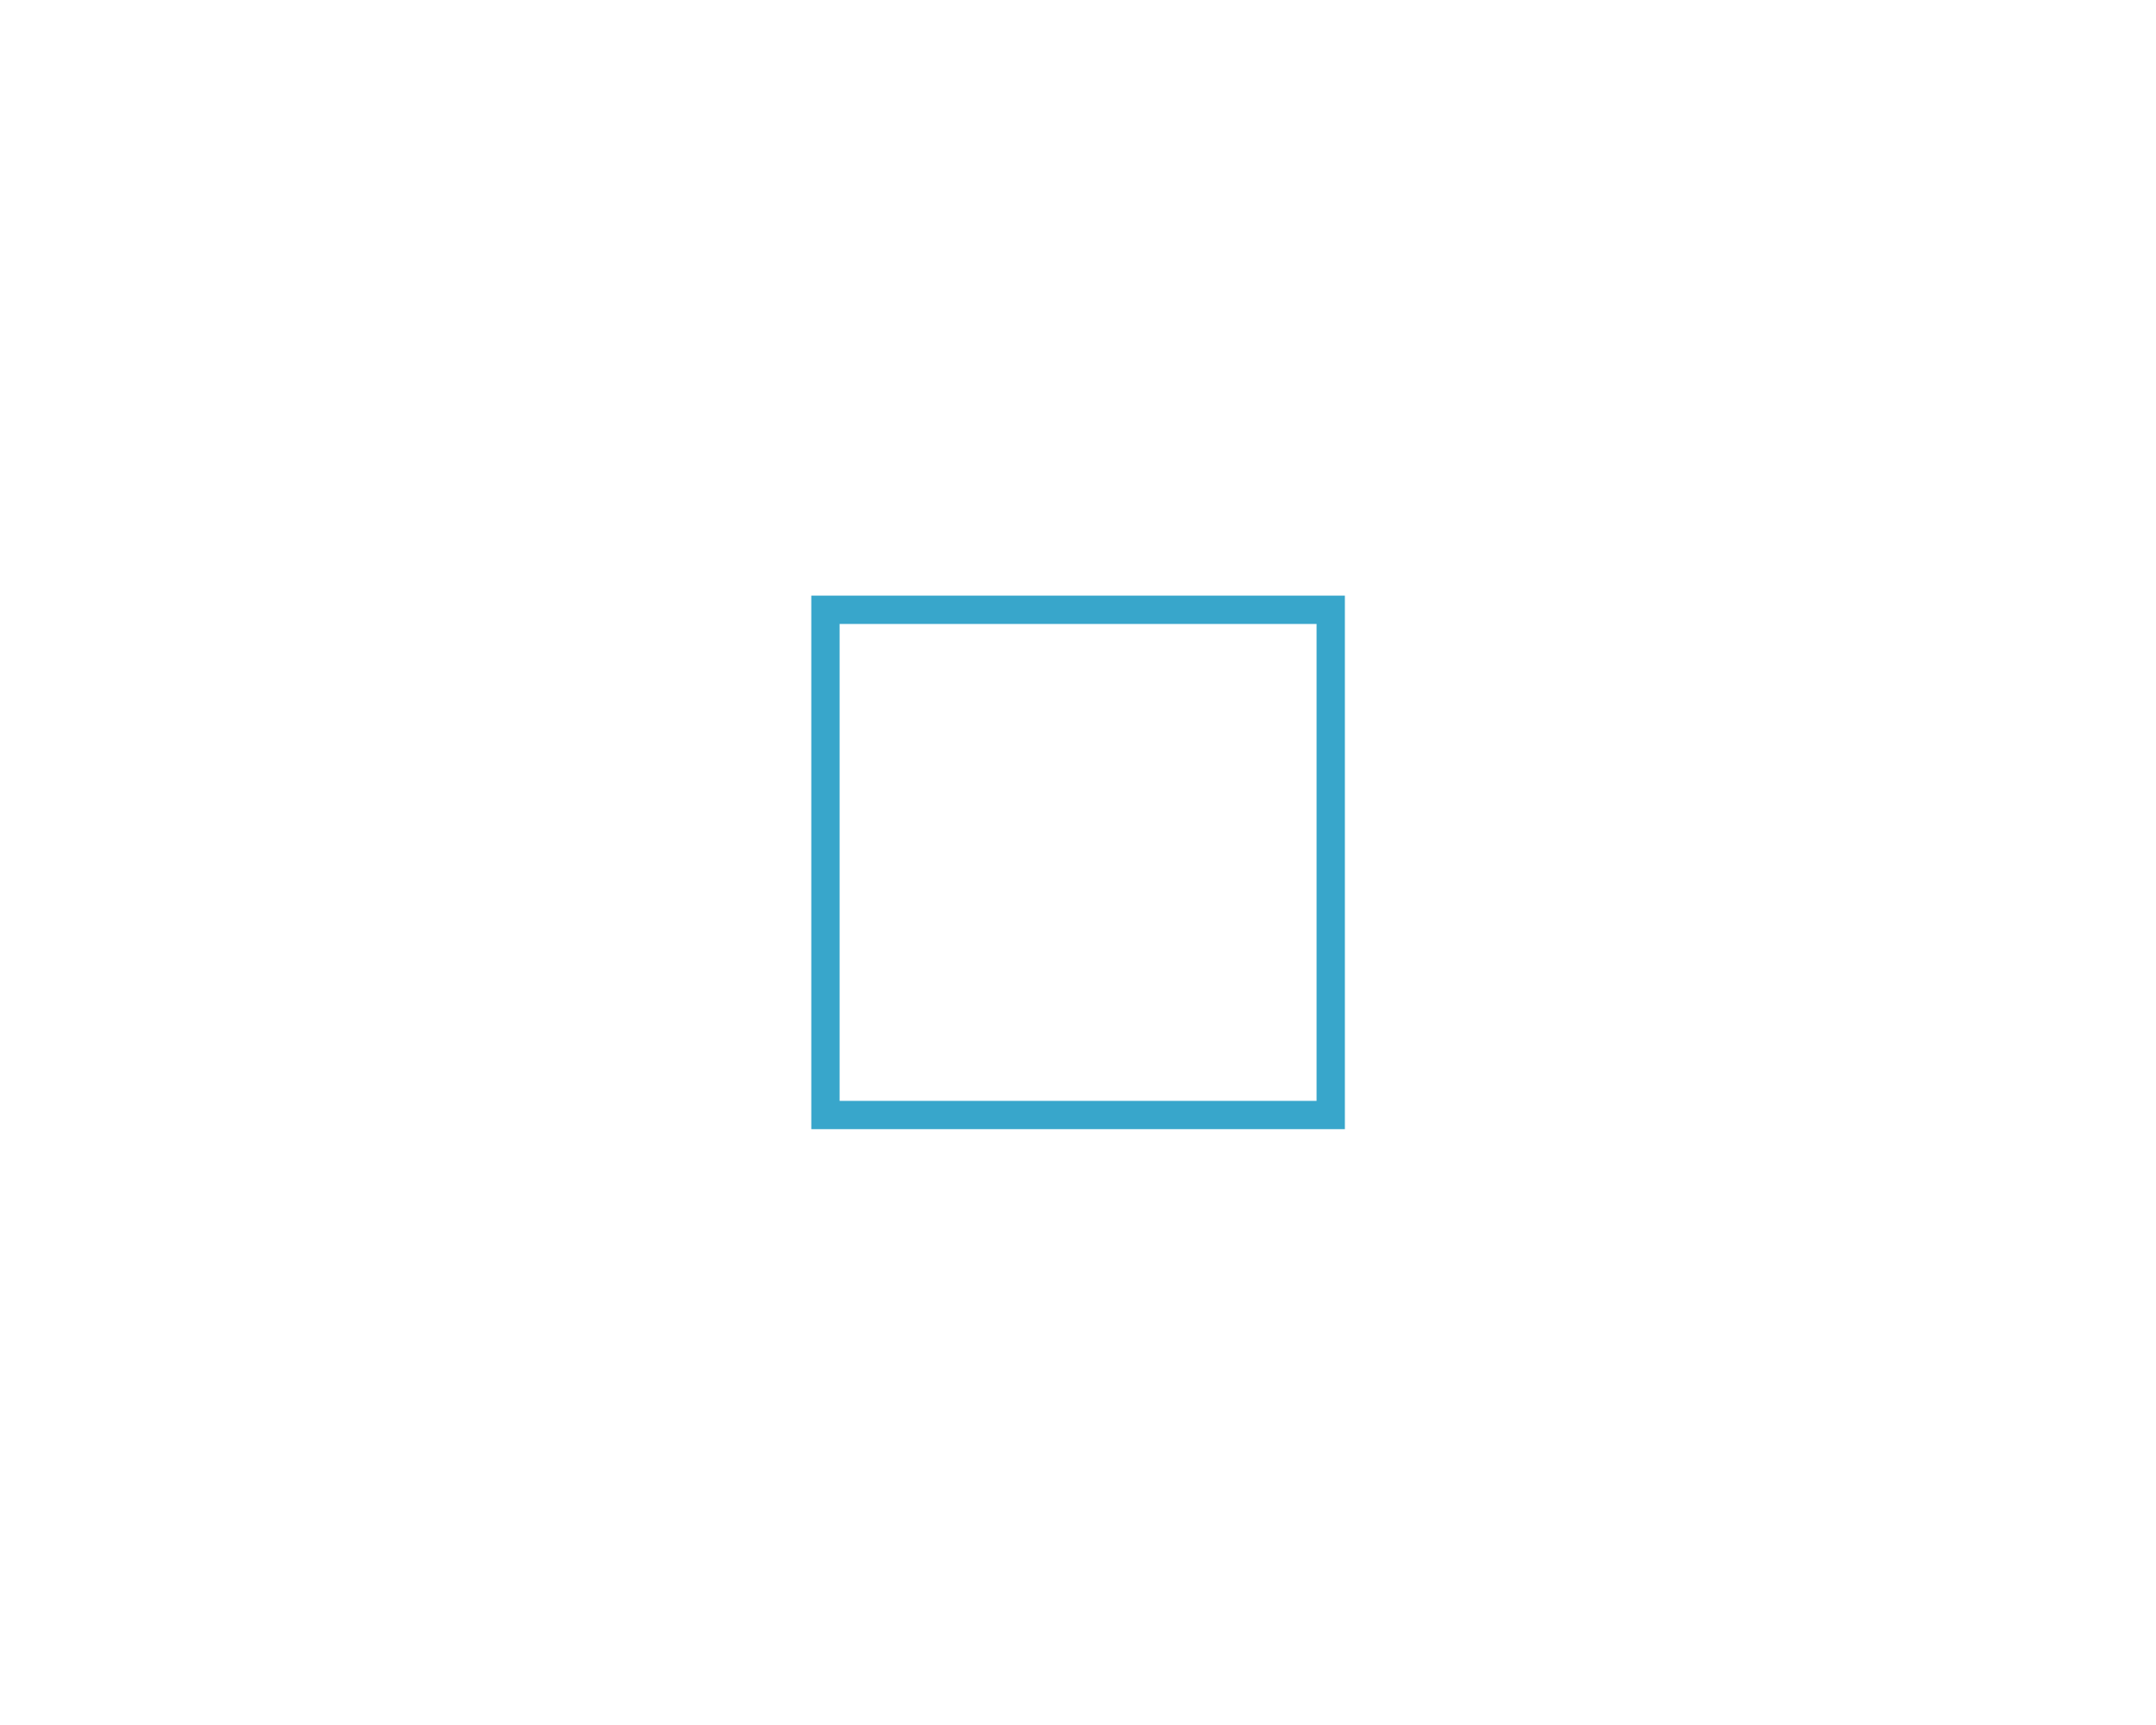 The second square represents the hope we find in the ripple effect. It is a reminder that every great accomplishment is the result of someone making a small start, and that influence and inspiration in turn inspires others to pass on contagious acts of greatness.